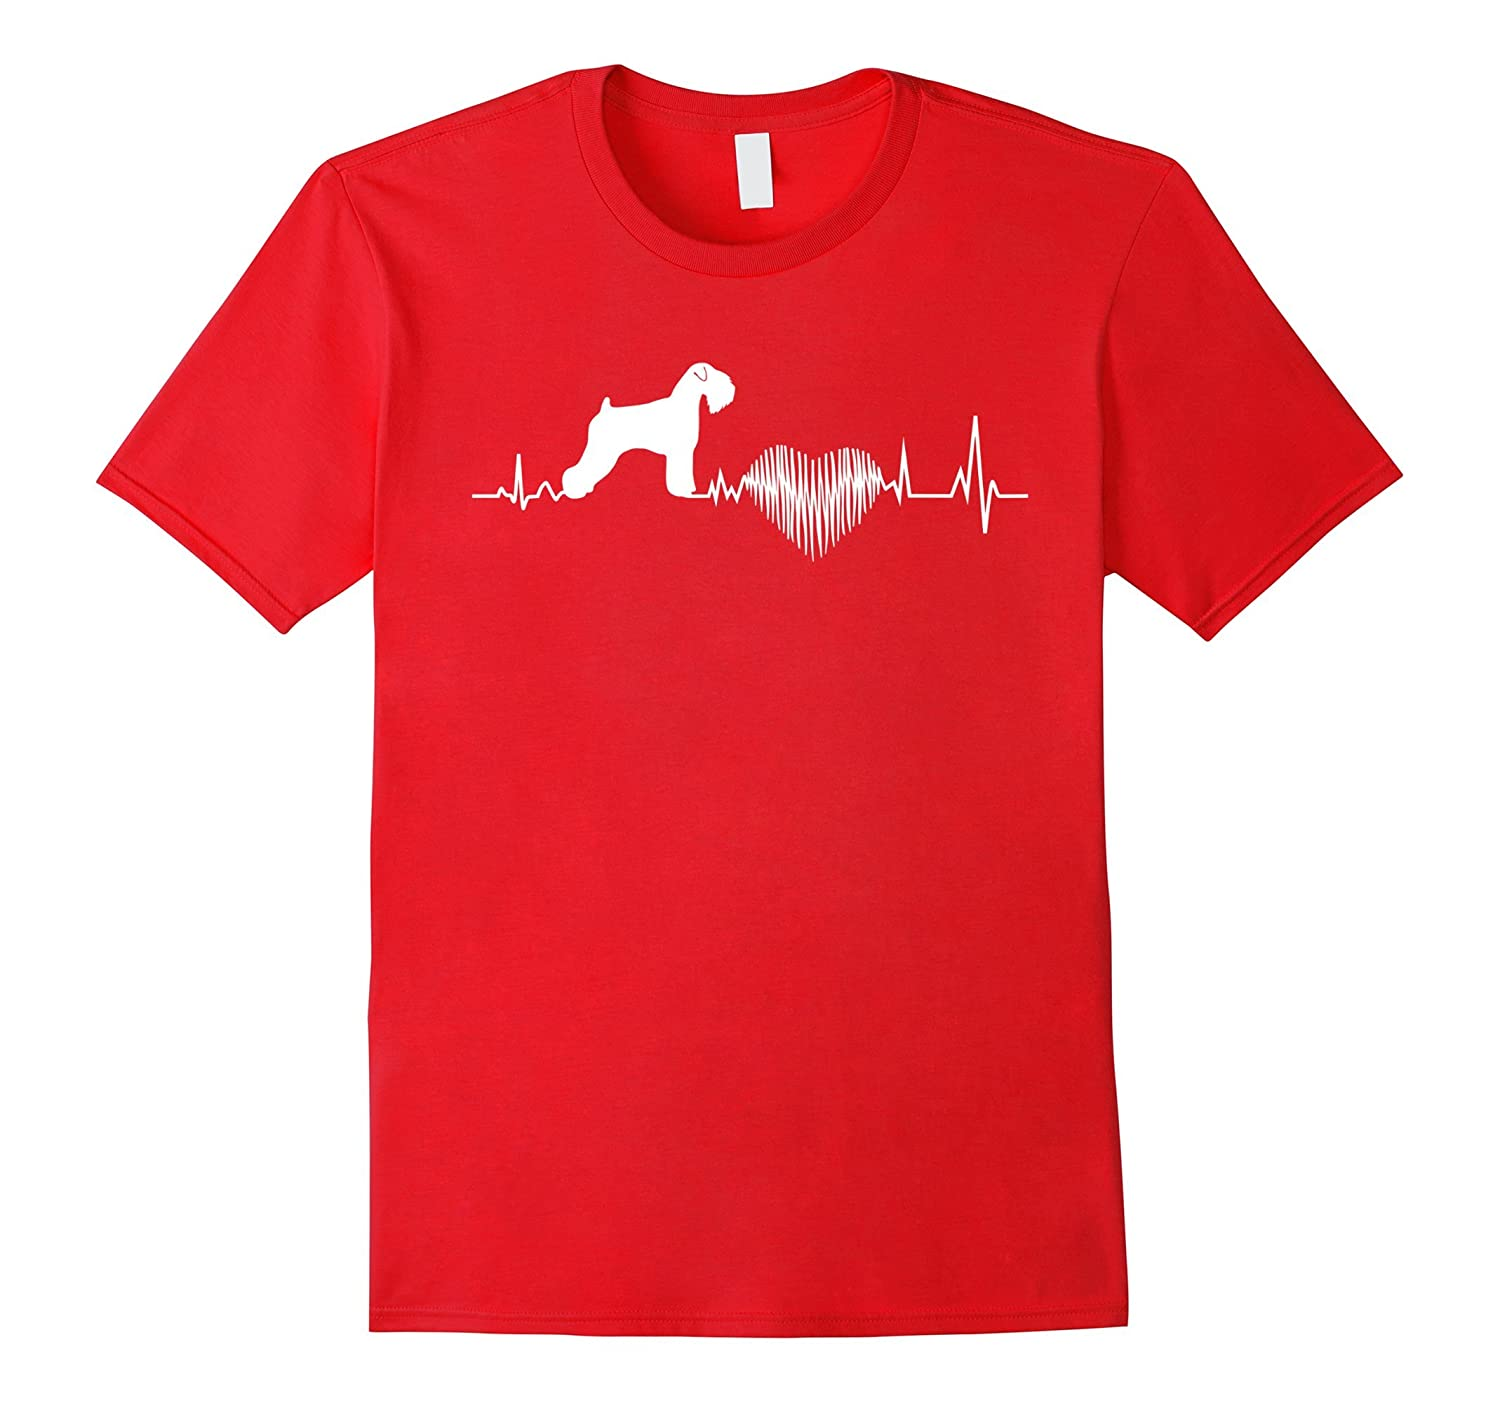 Soft Coated Wheaten Terrier Funny T-Shirts For Dog Lovers-Teevkd